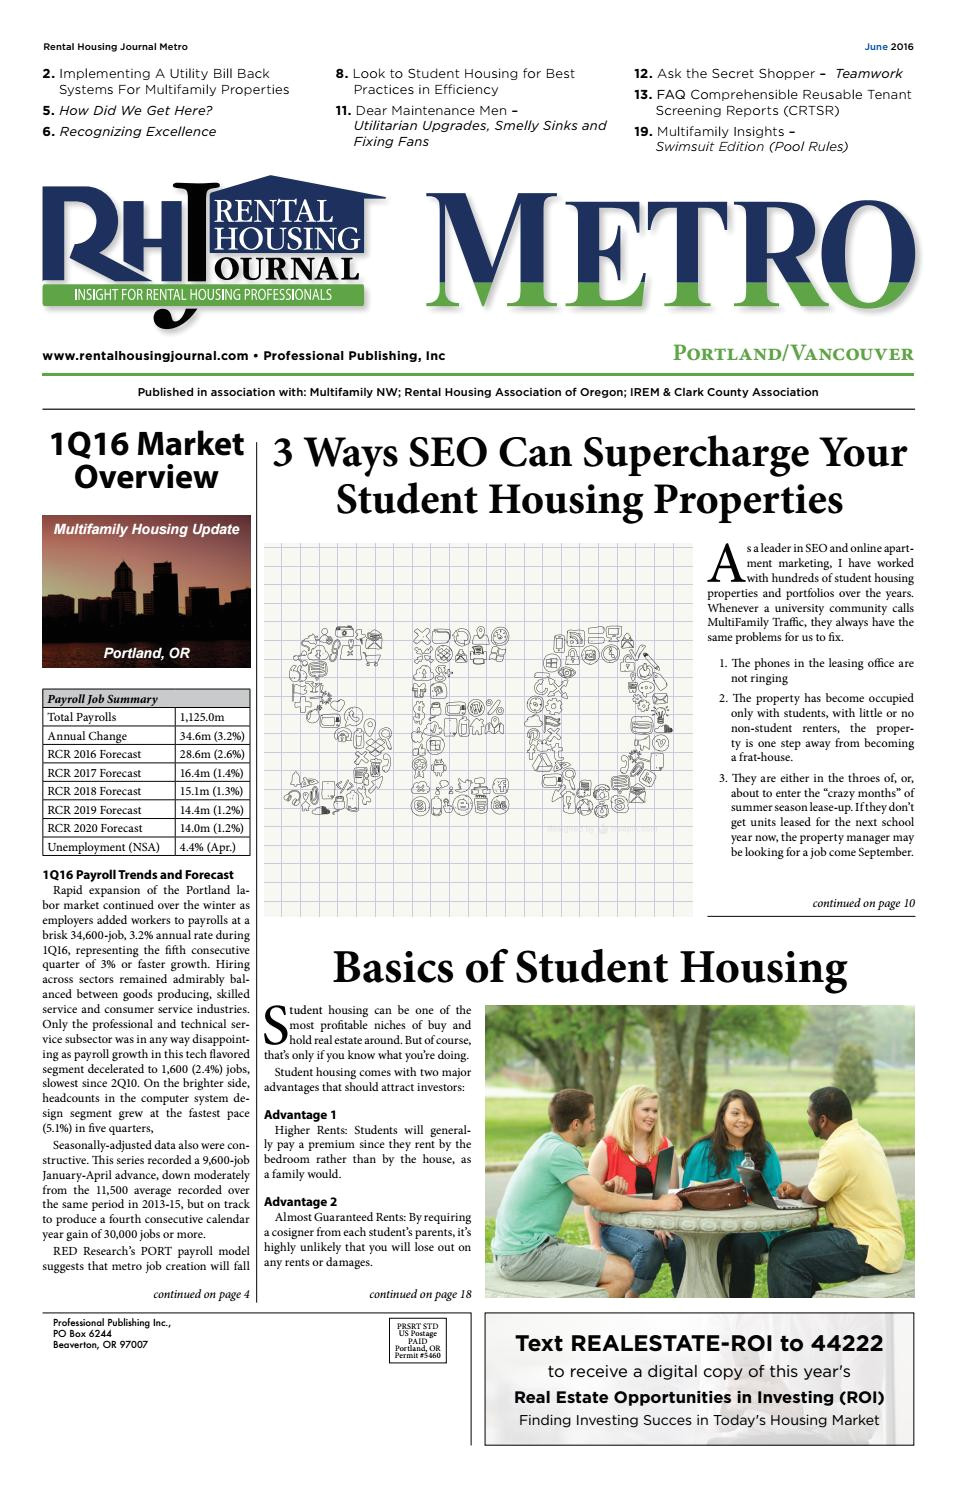 rental housing journal metro june 2016 by professional publishing inc issuu